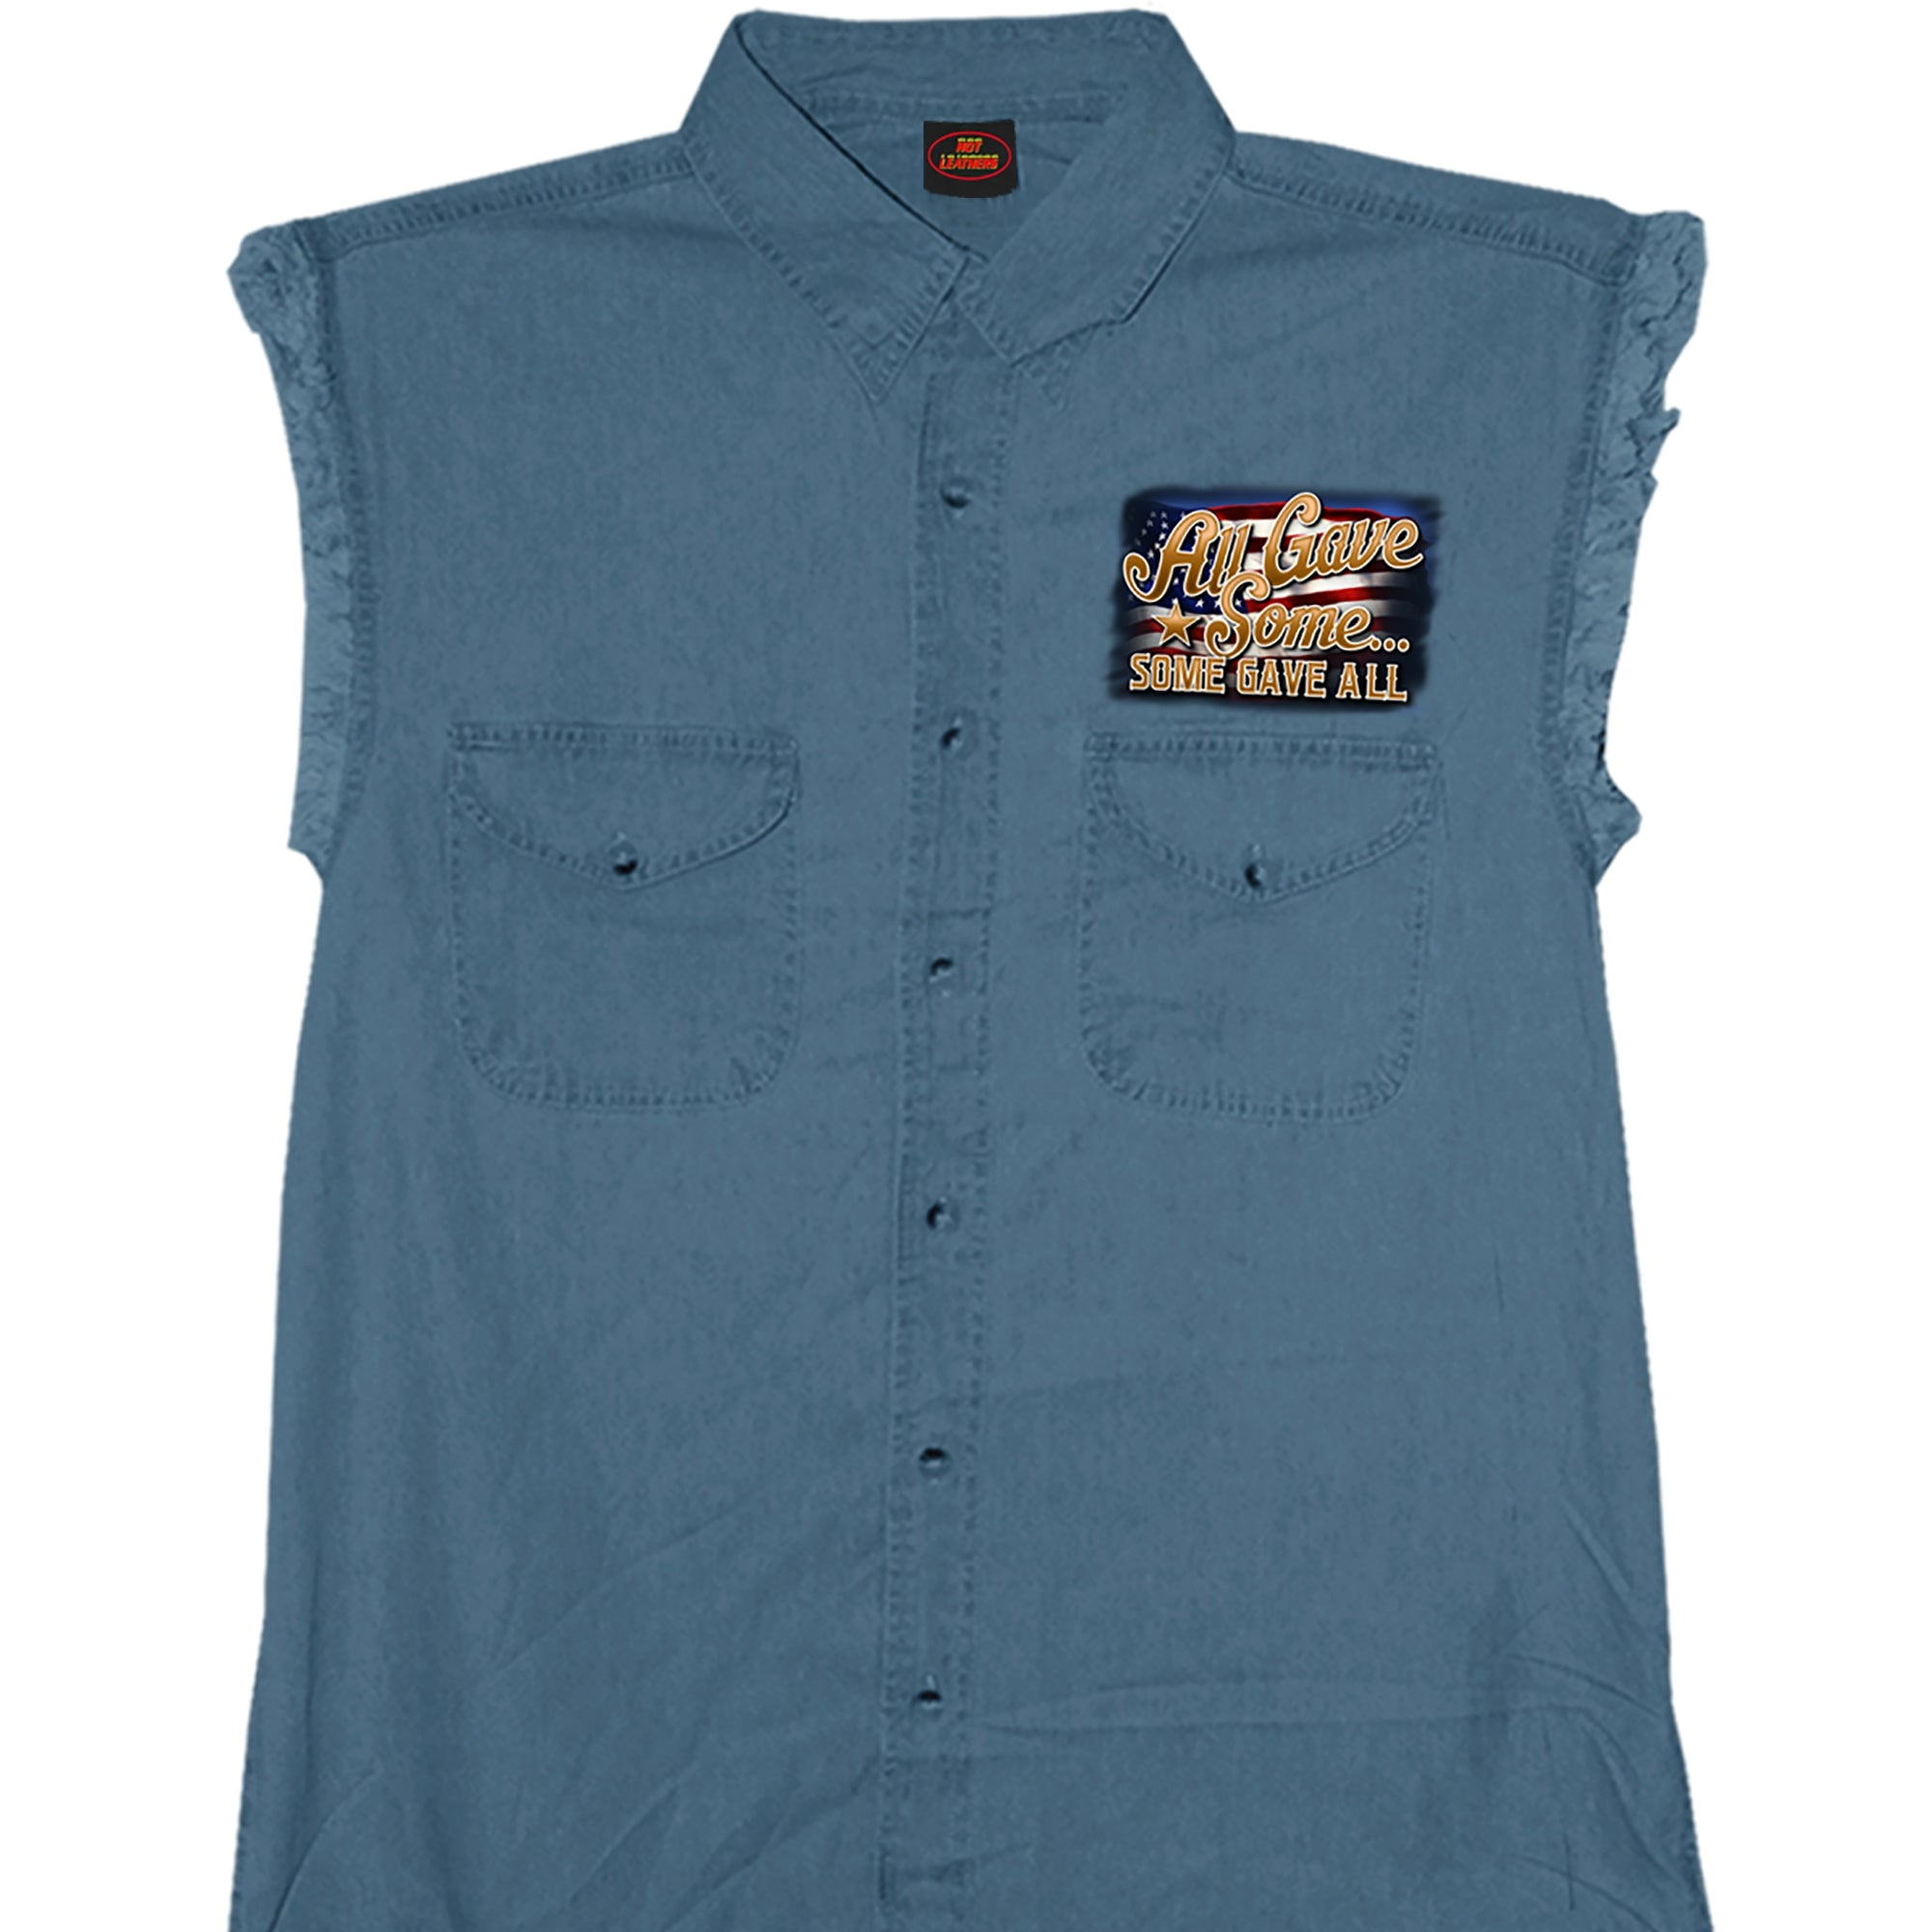 Hot Leathers Remembrance Sleeveless Denim Shirt